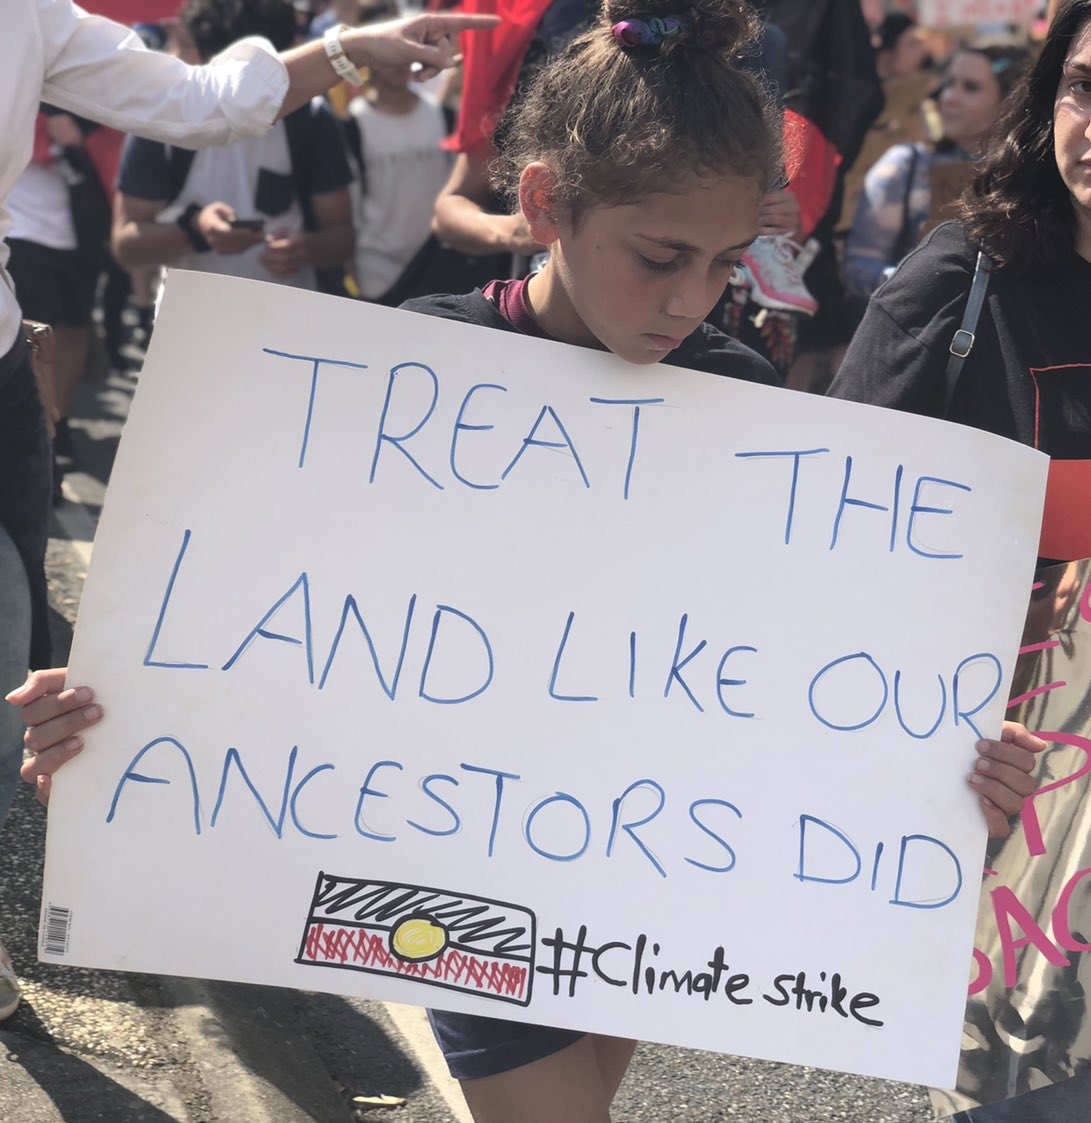 We don't inherit the land from our ancestors we borrow it from our children.  ✊🏾🖤💛❤️✊🏾 #ClimateStrike https://t.co/2LOlRFC3Jh